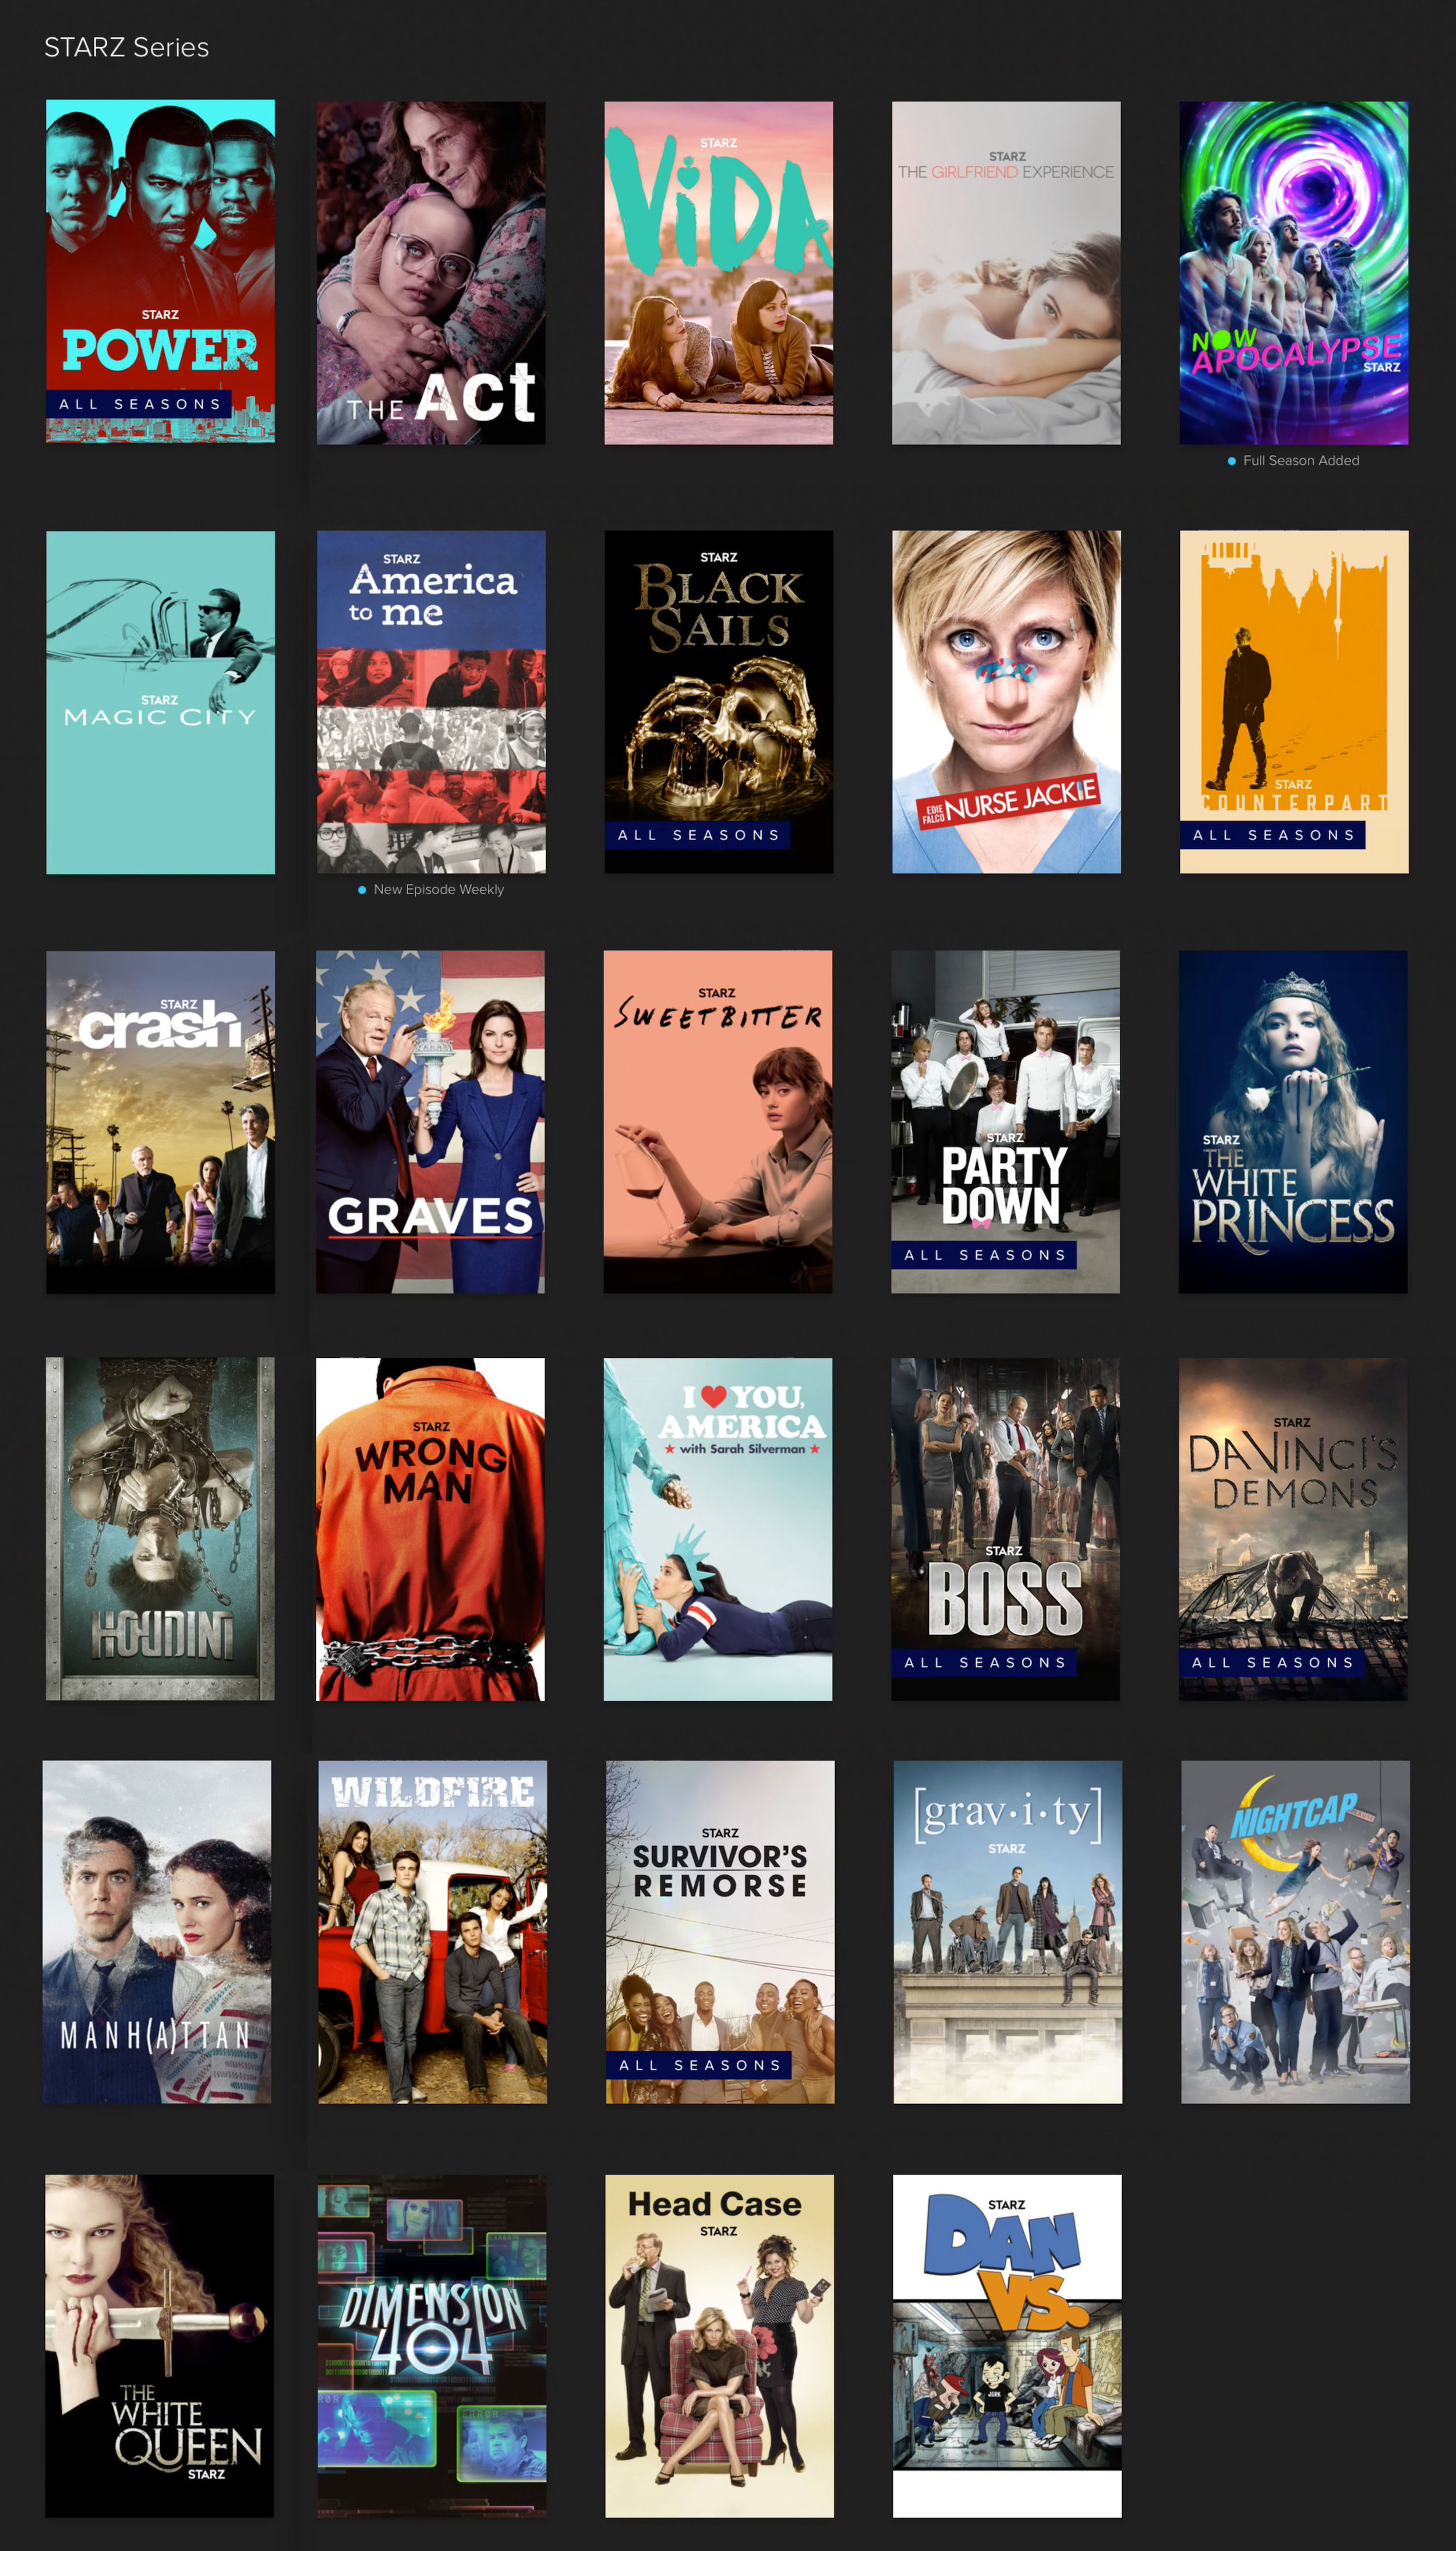 The available Starz shows on Crave for an additional $5.99